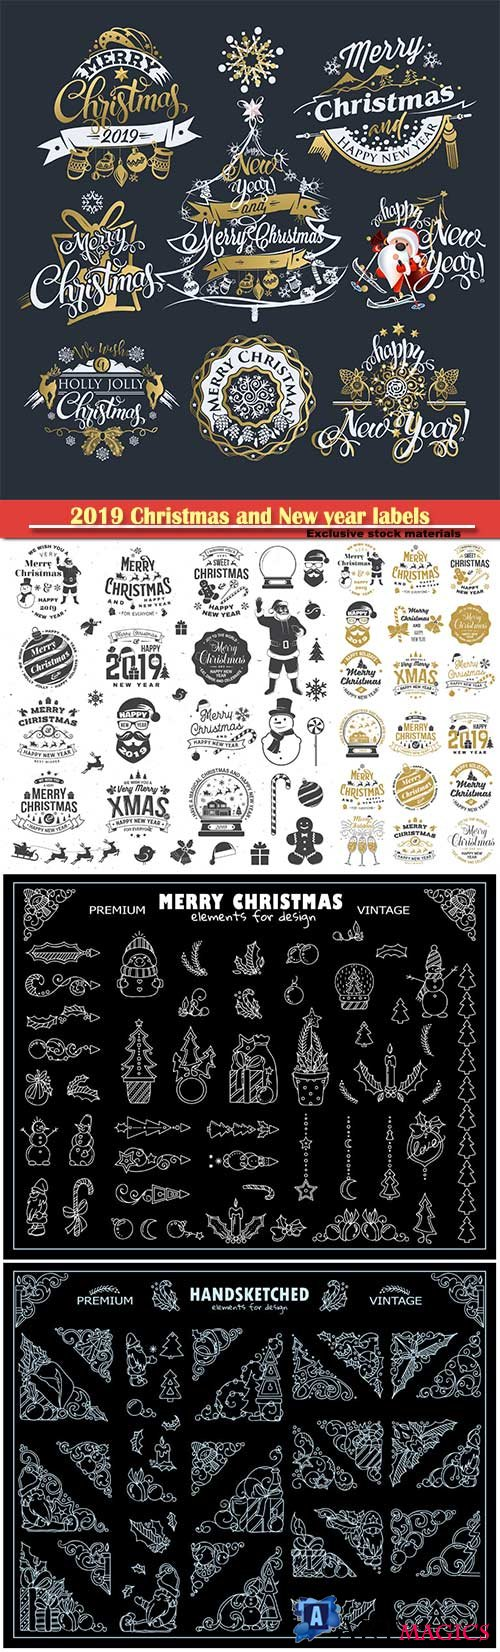 2019 Christmas and New year labels and decoration vector borders